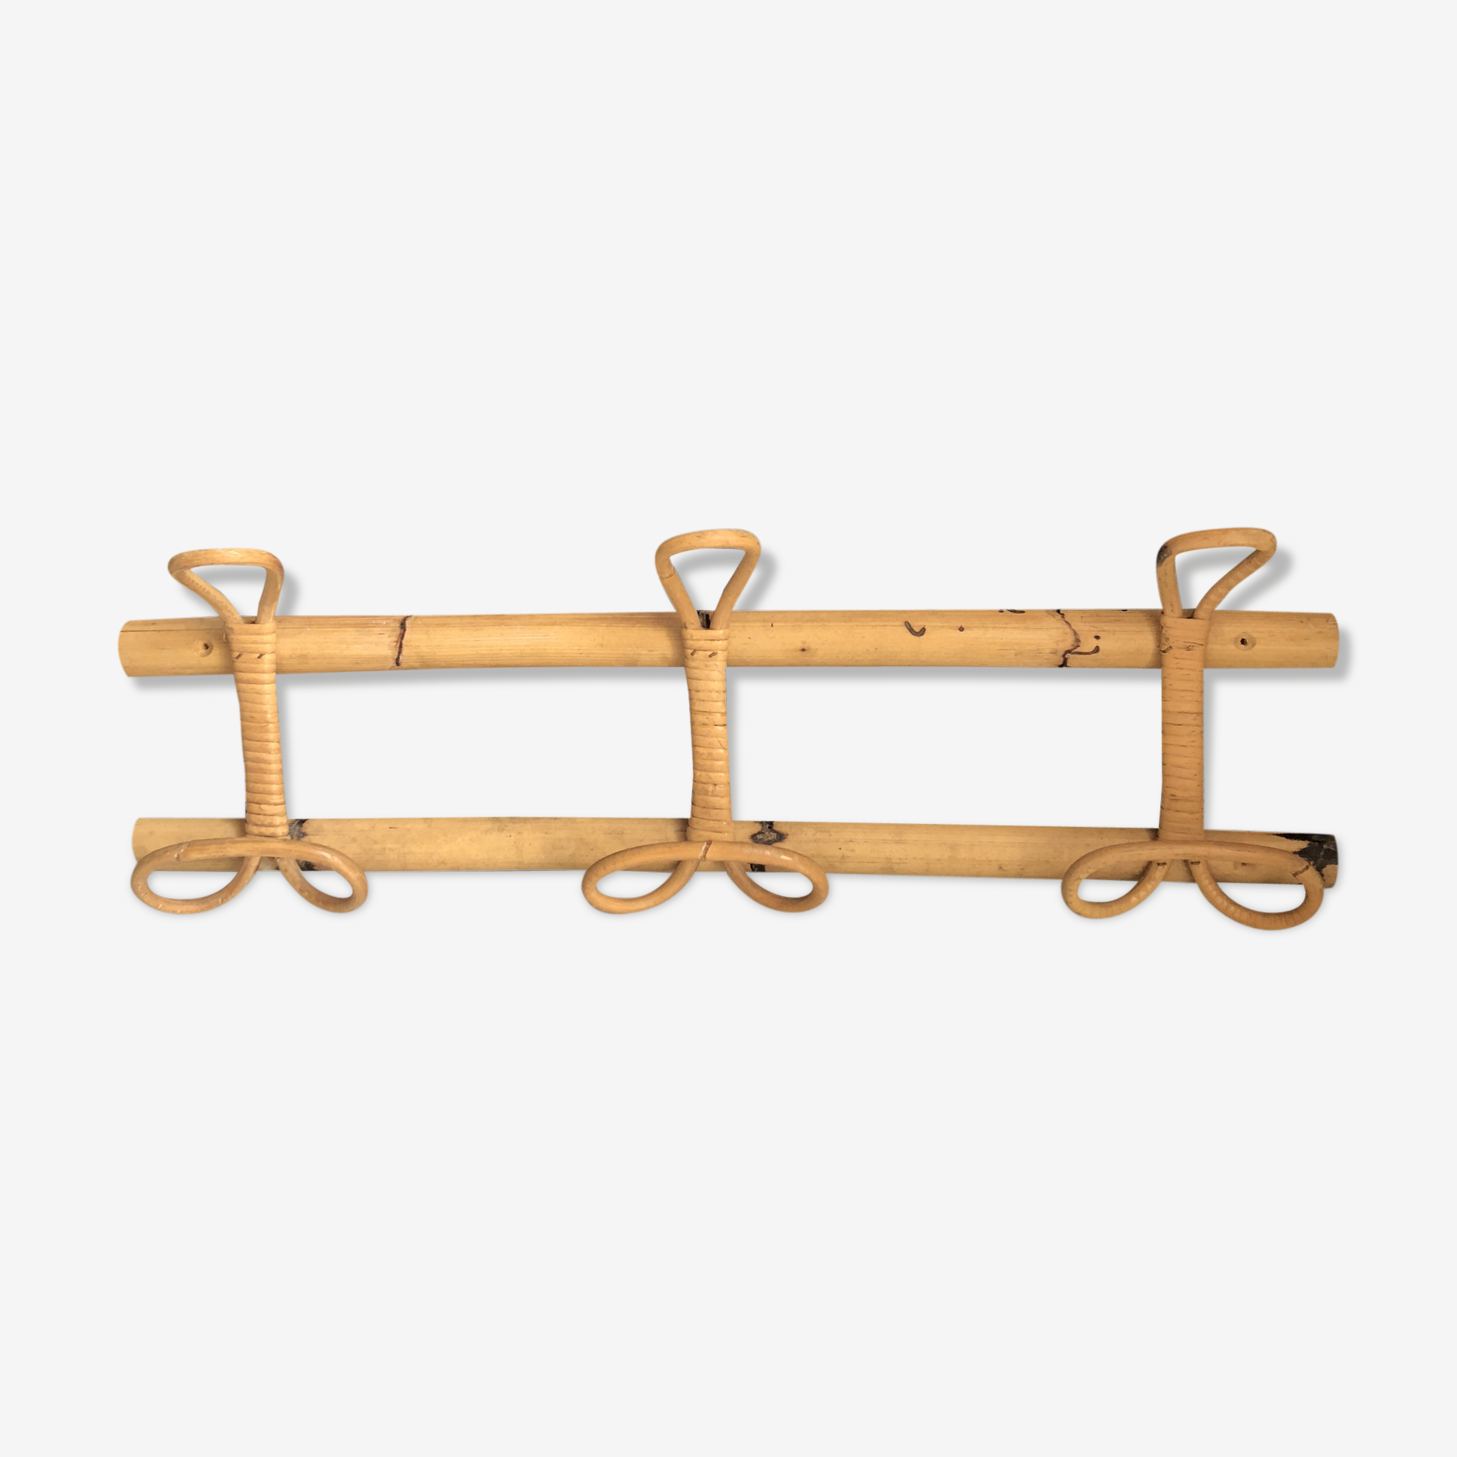 Coat rack in bamboo and rattan